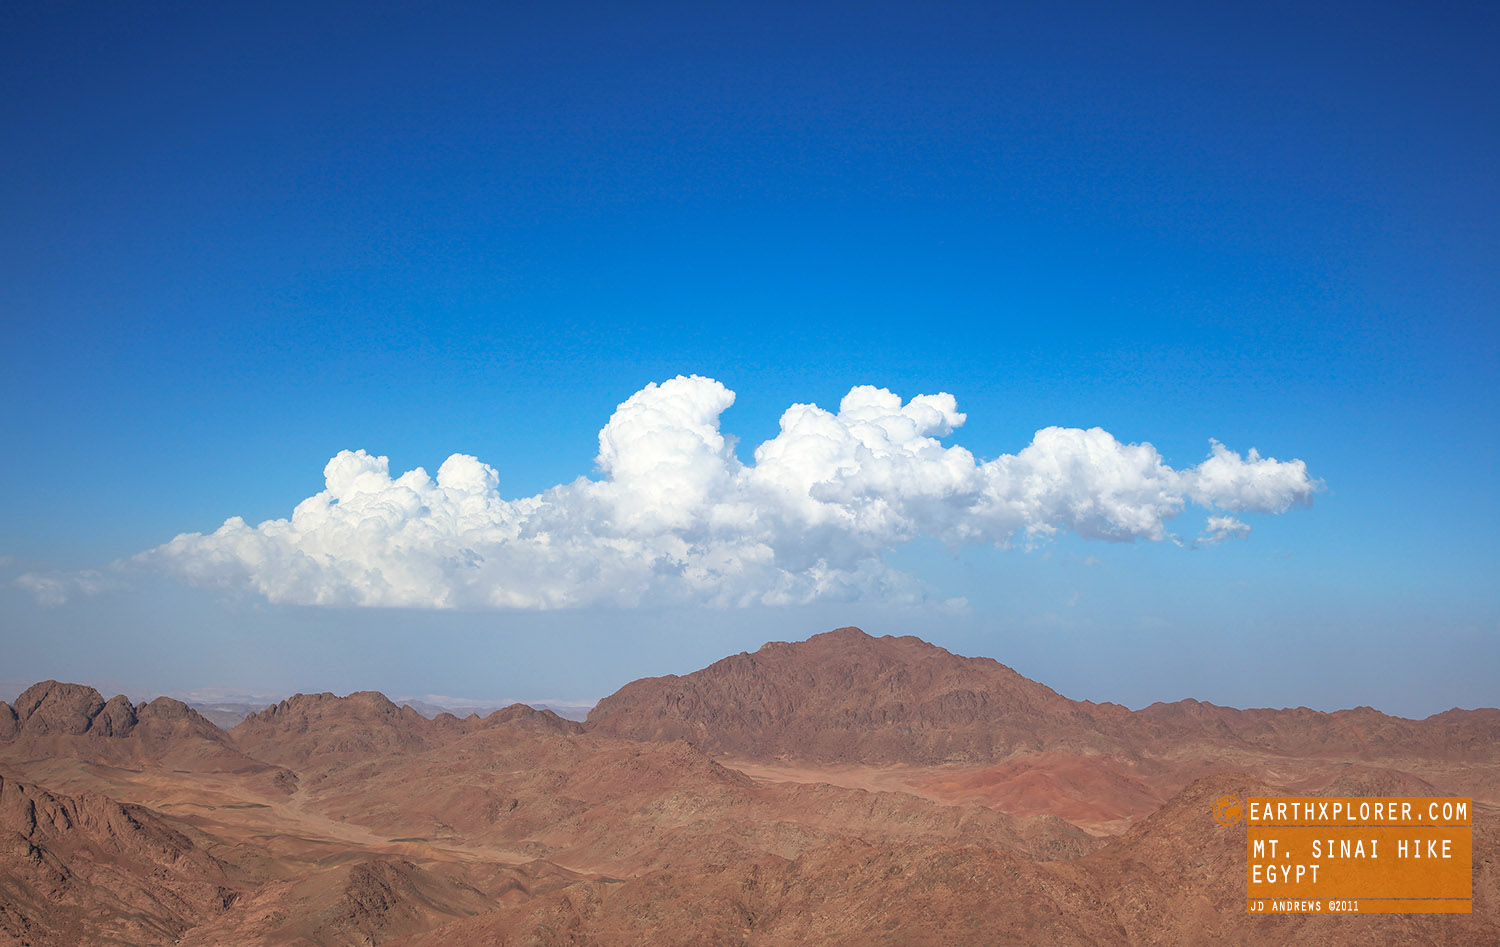 Mount Sinai is a mountain in the Sinai Peninsula of Egypt.